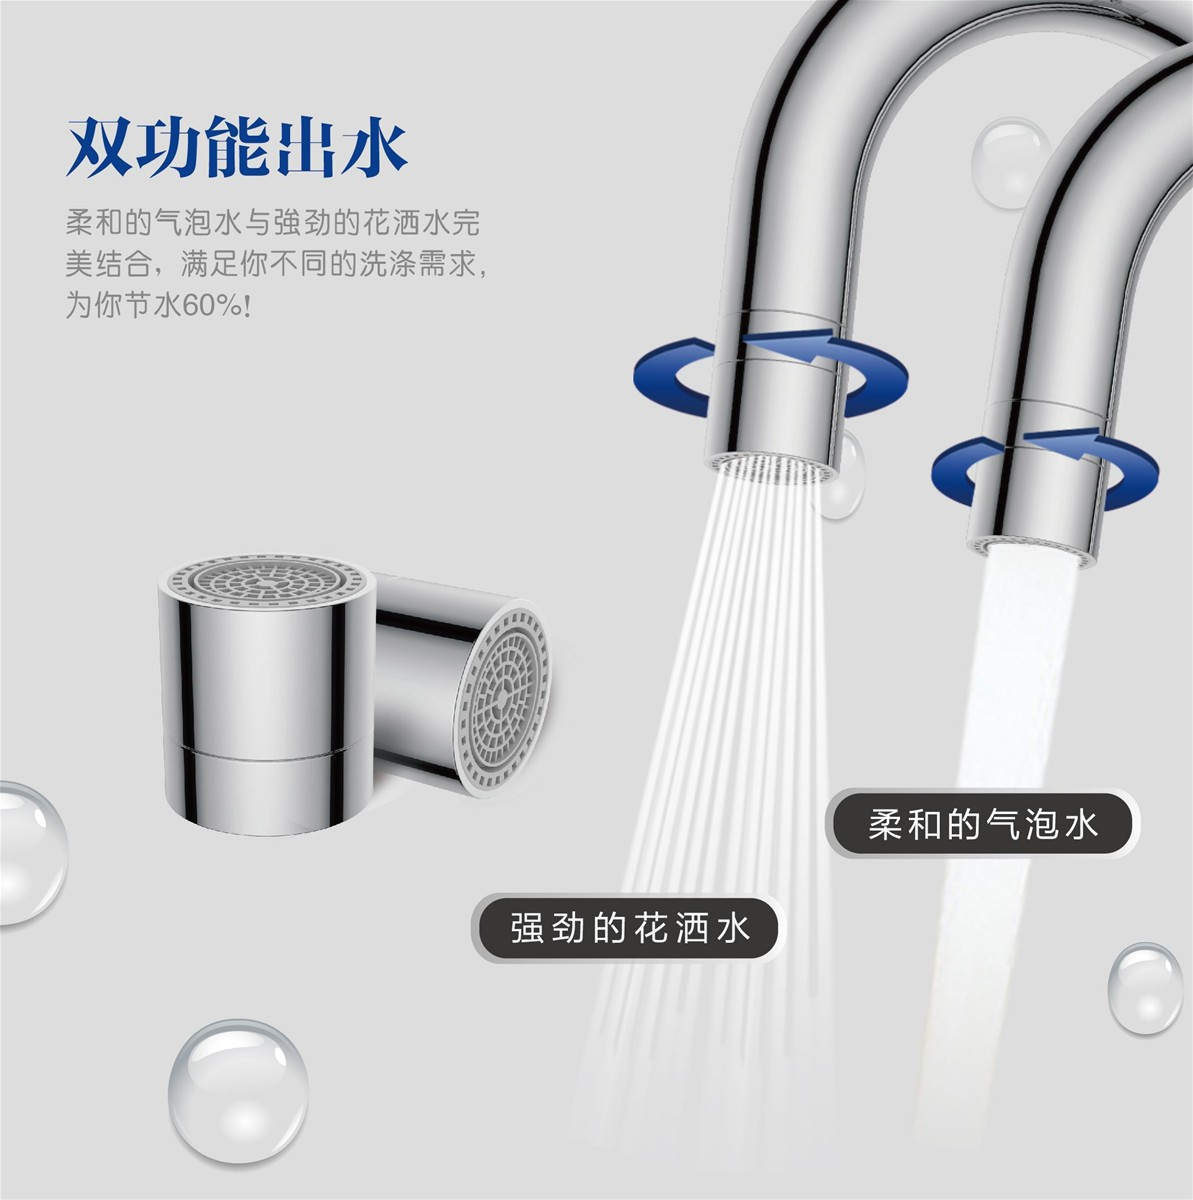 aerator net aerators stream female water brass male a bubble faucet sonao saving nozzle for spray v spout kitchen